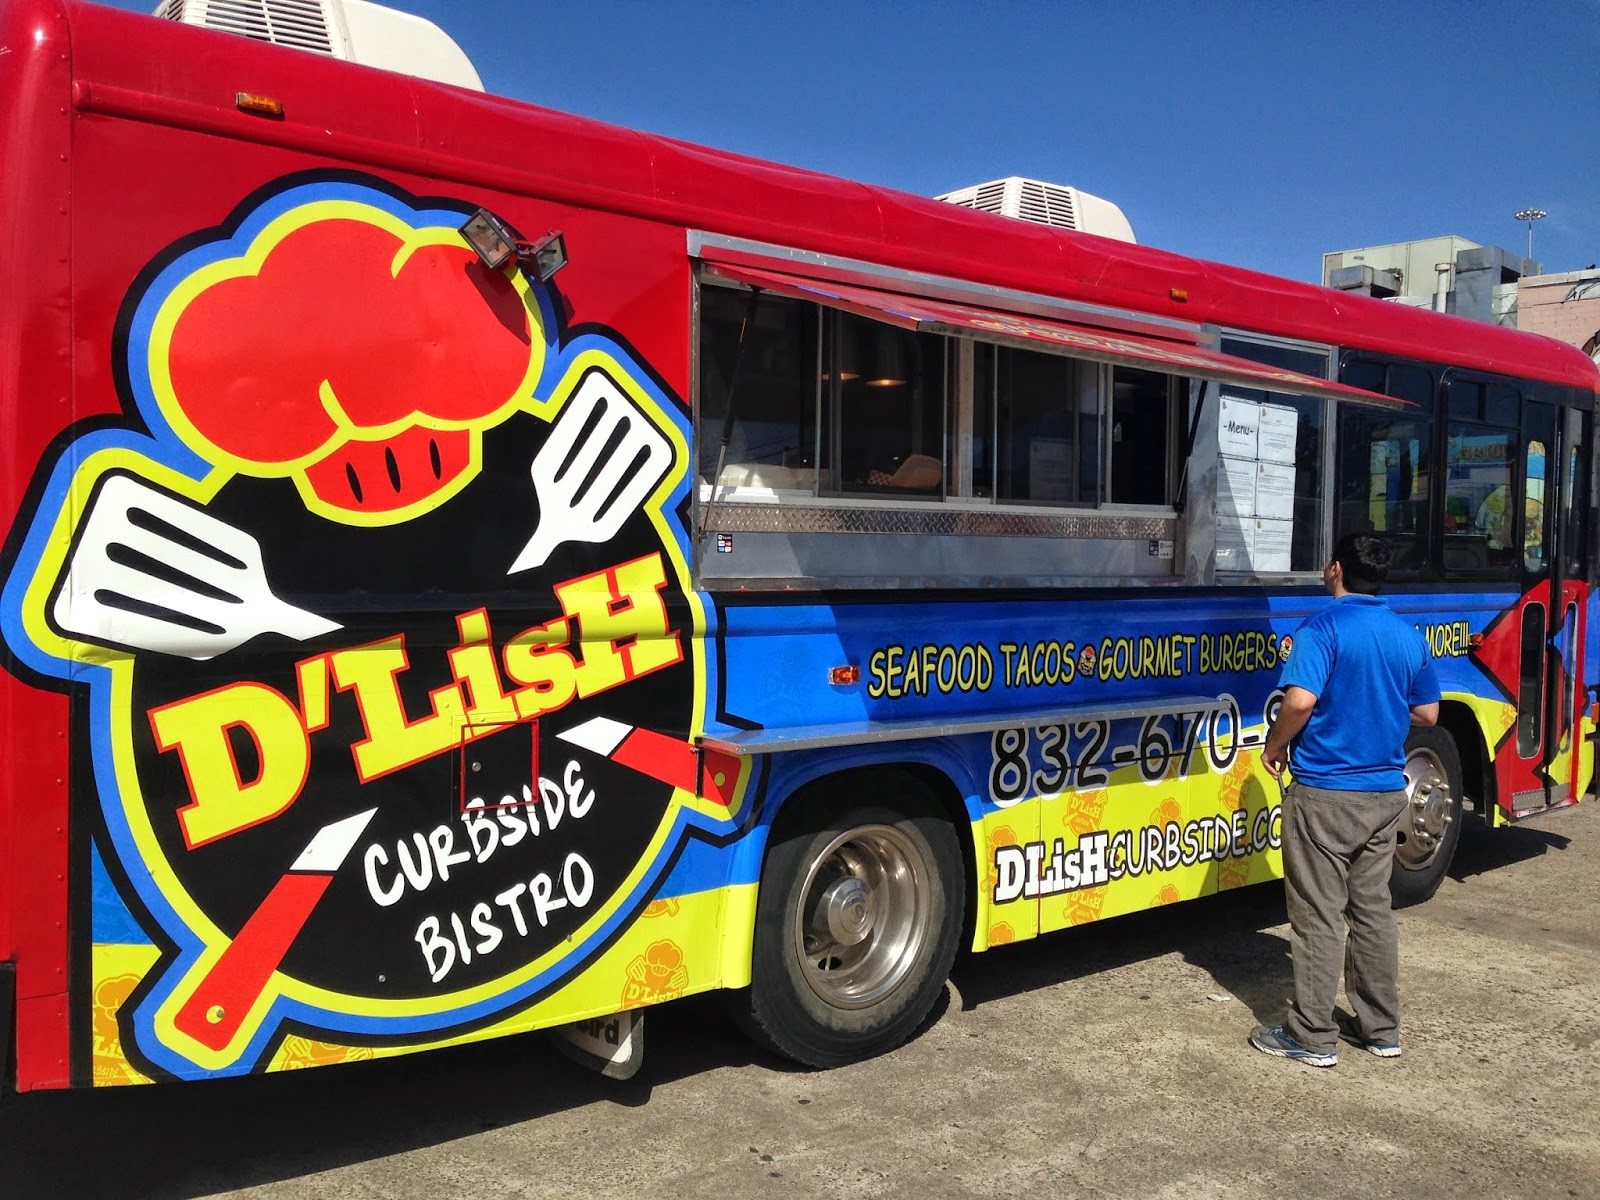 D'Lish Curbside Bistro Food Truck, Houston TX